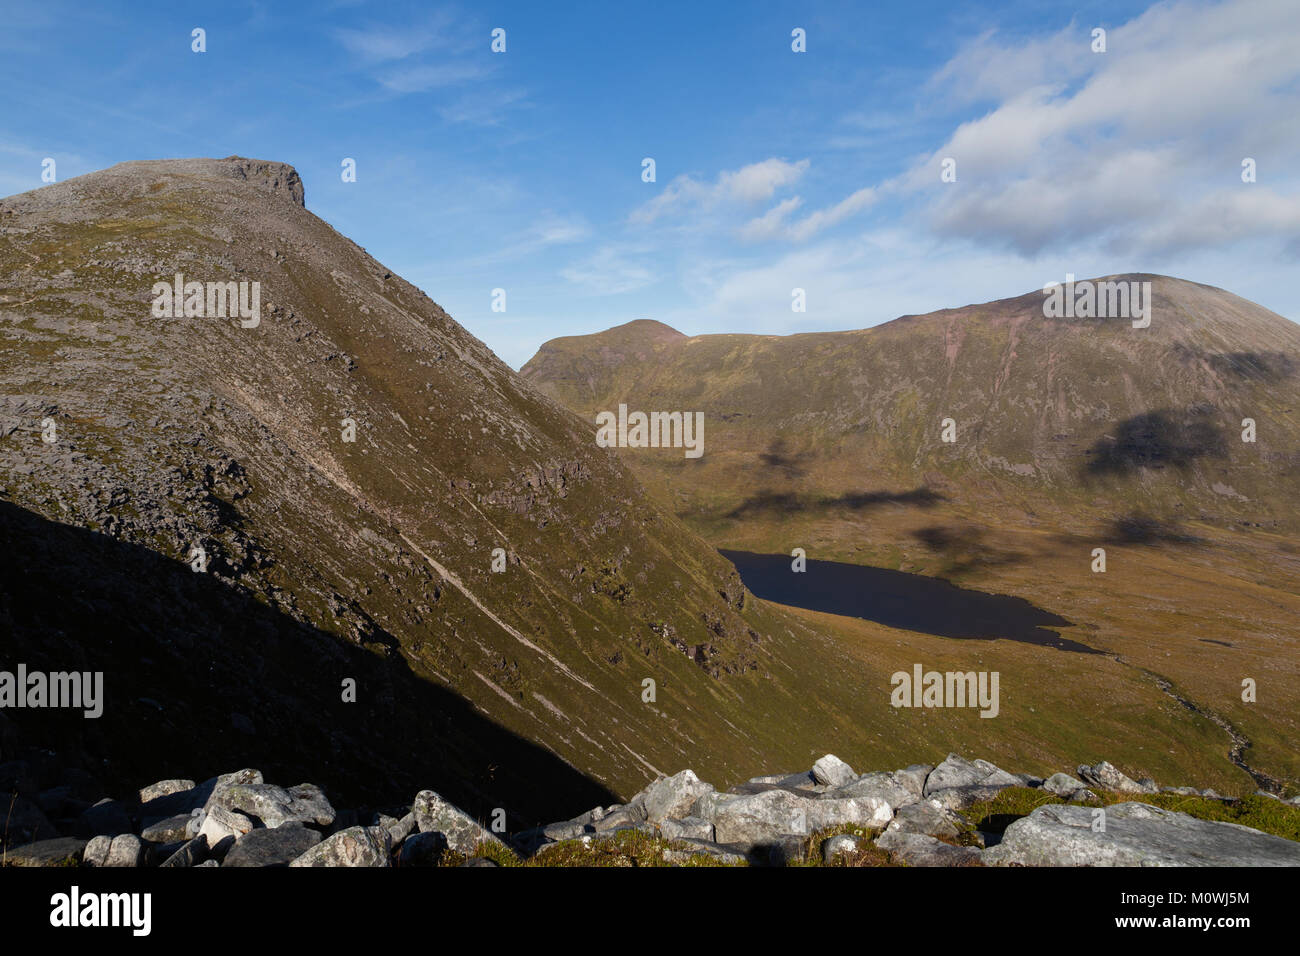 The view from Quinag, a mountain in the North West Highlands of Scotland - Stock Image